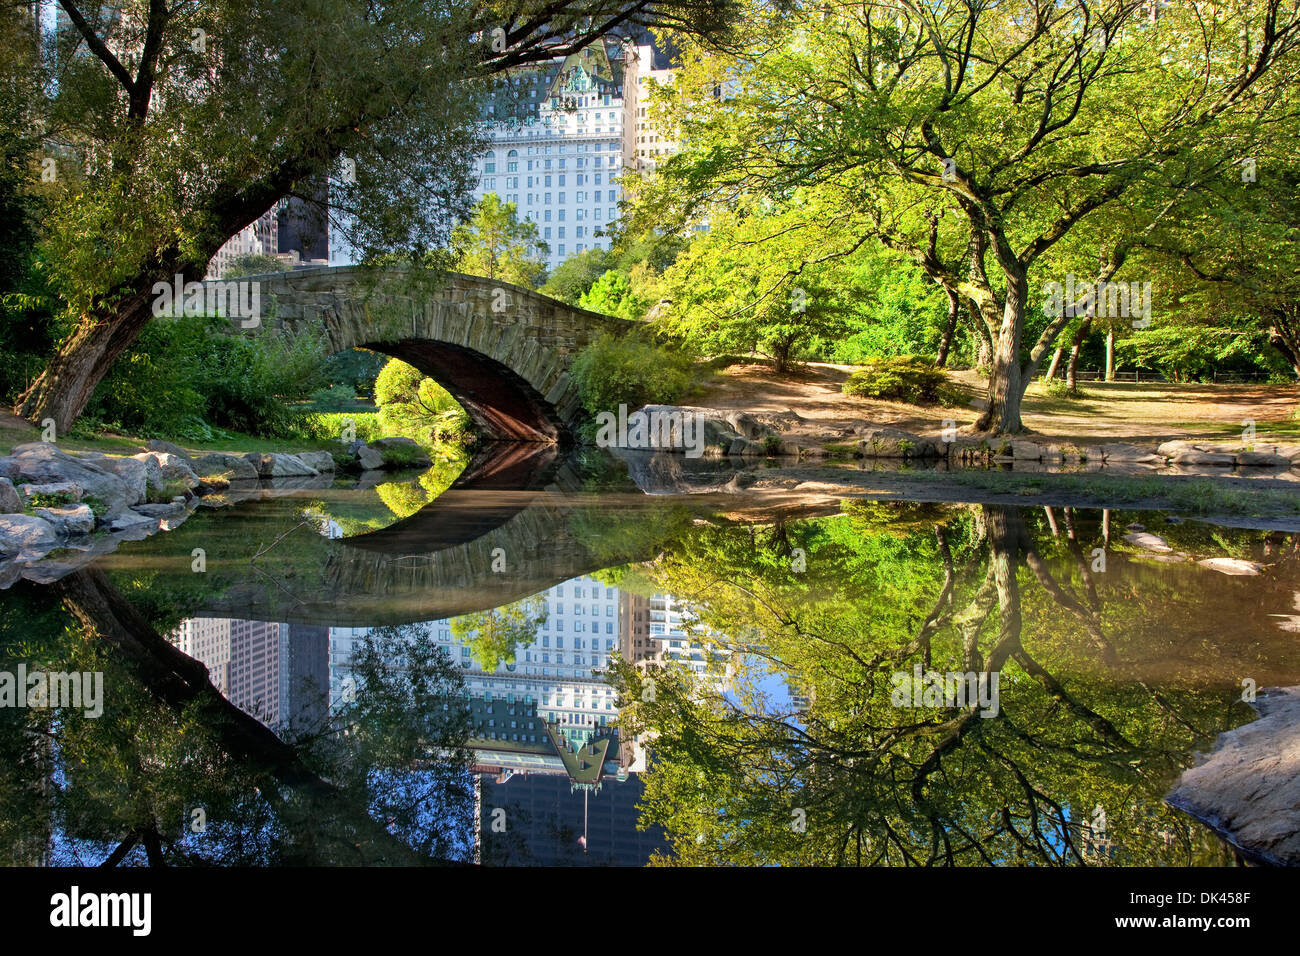 4k Central Park In The Fall Wallpaper Stone Bridge Over The Pond In Central Park With